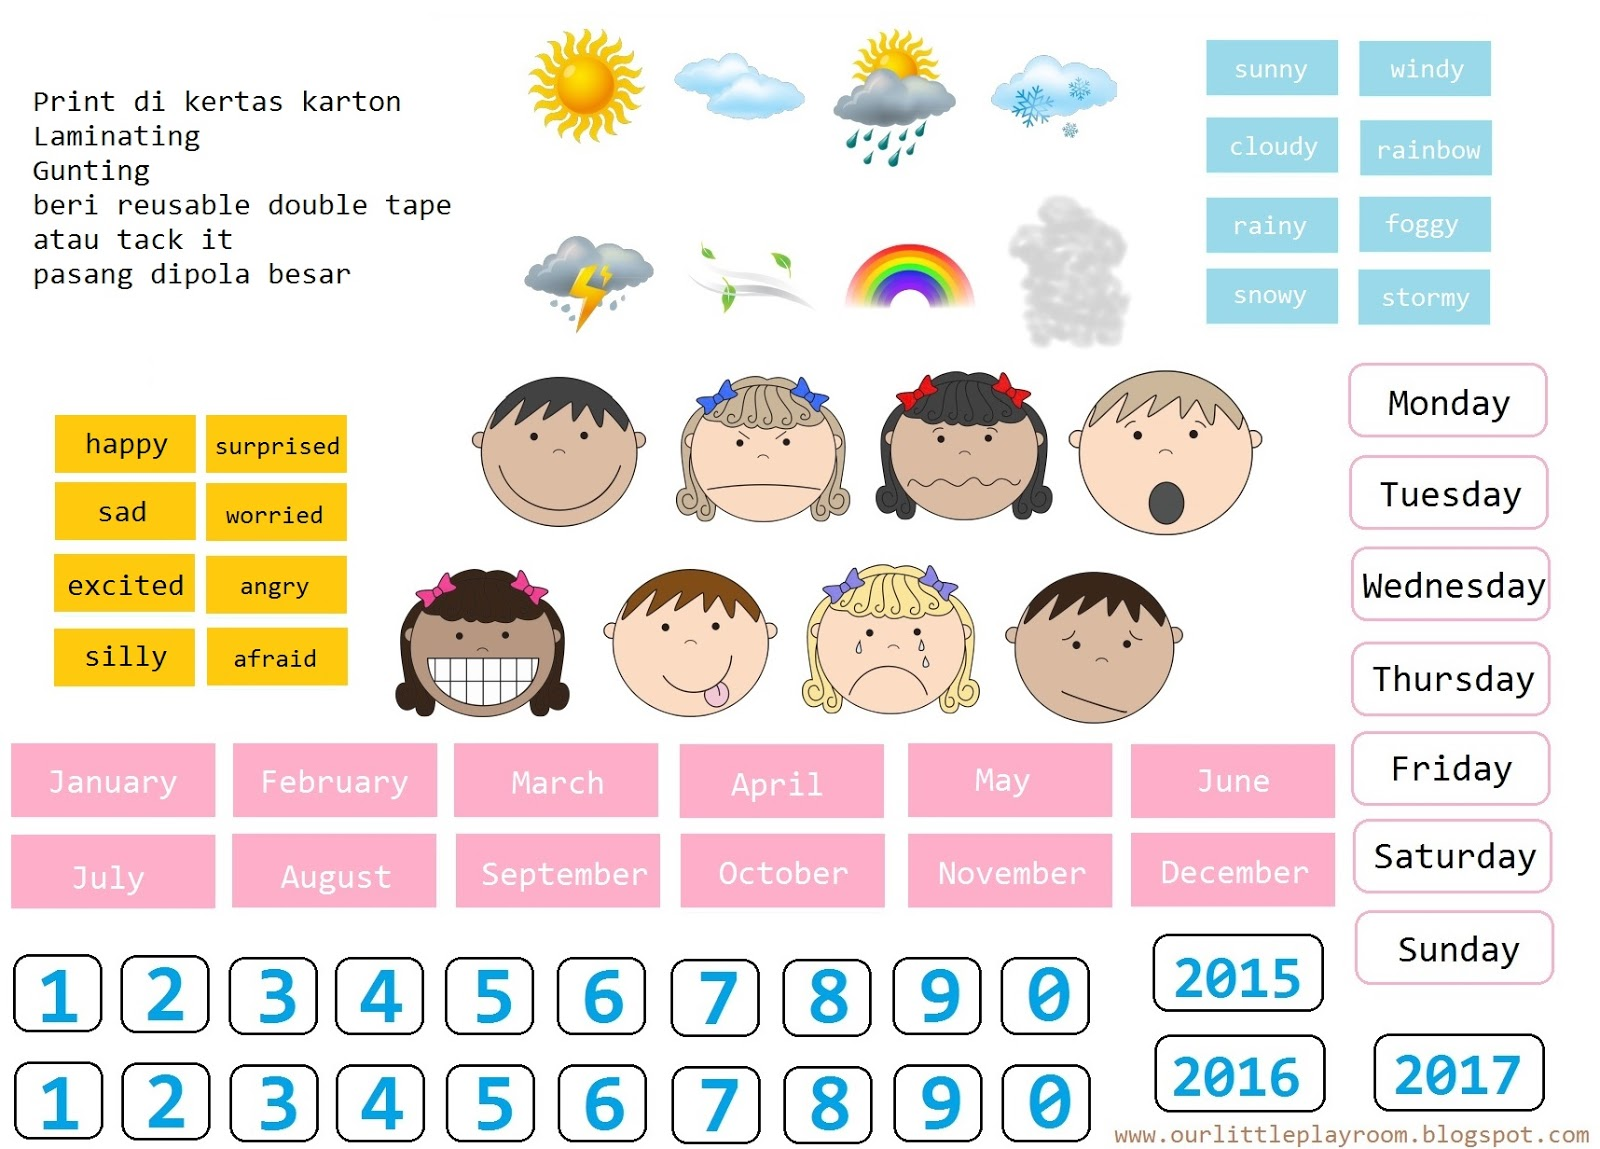 Worksheets Worksheet-bahasa-indonesia-tk our little playroom 2015 today hanging chart